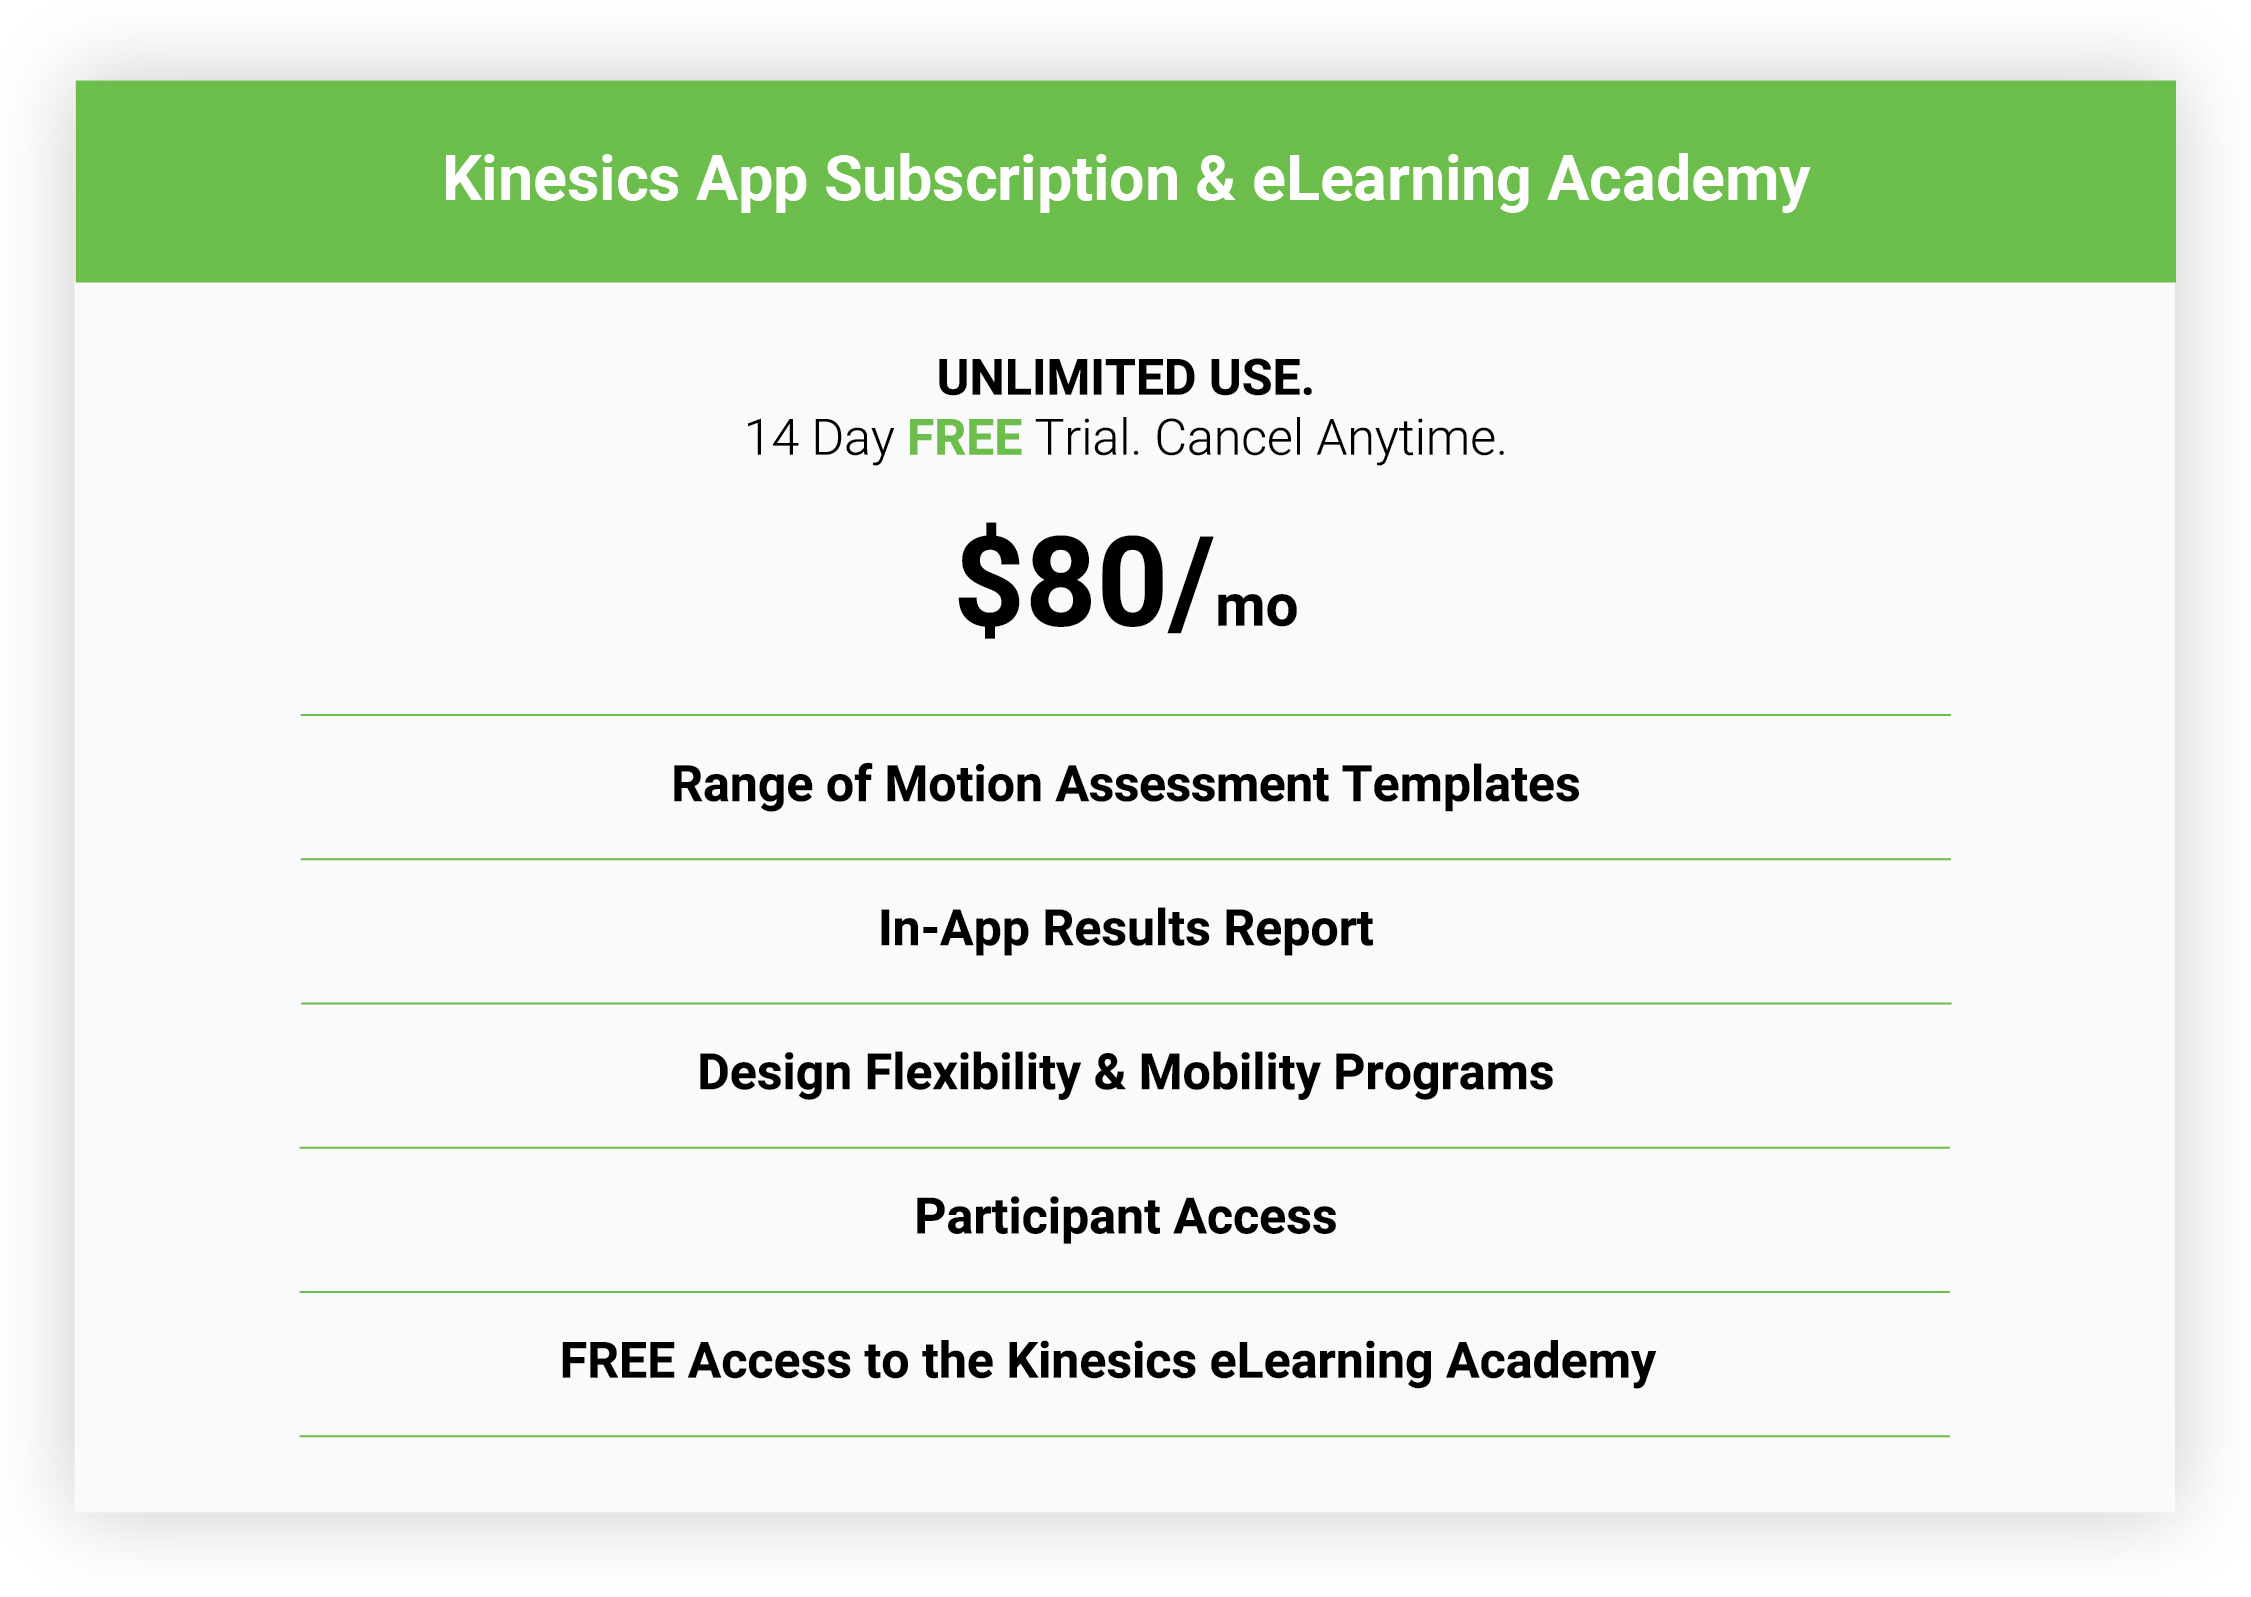 Kinesics_WebsiteImages_Pricing_20190506-01.jpg